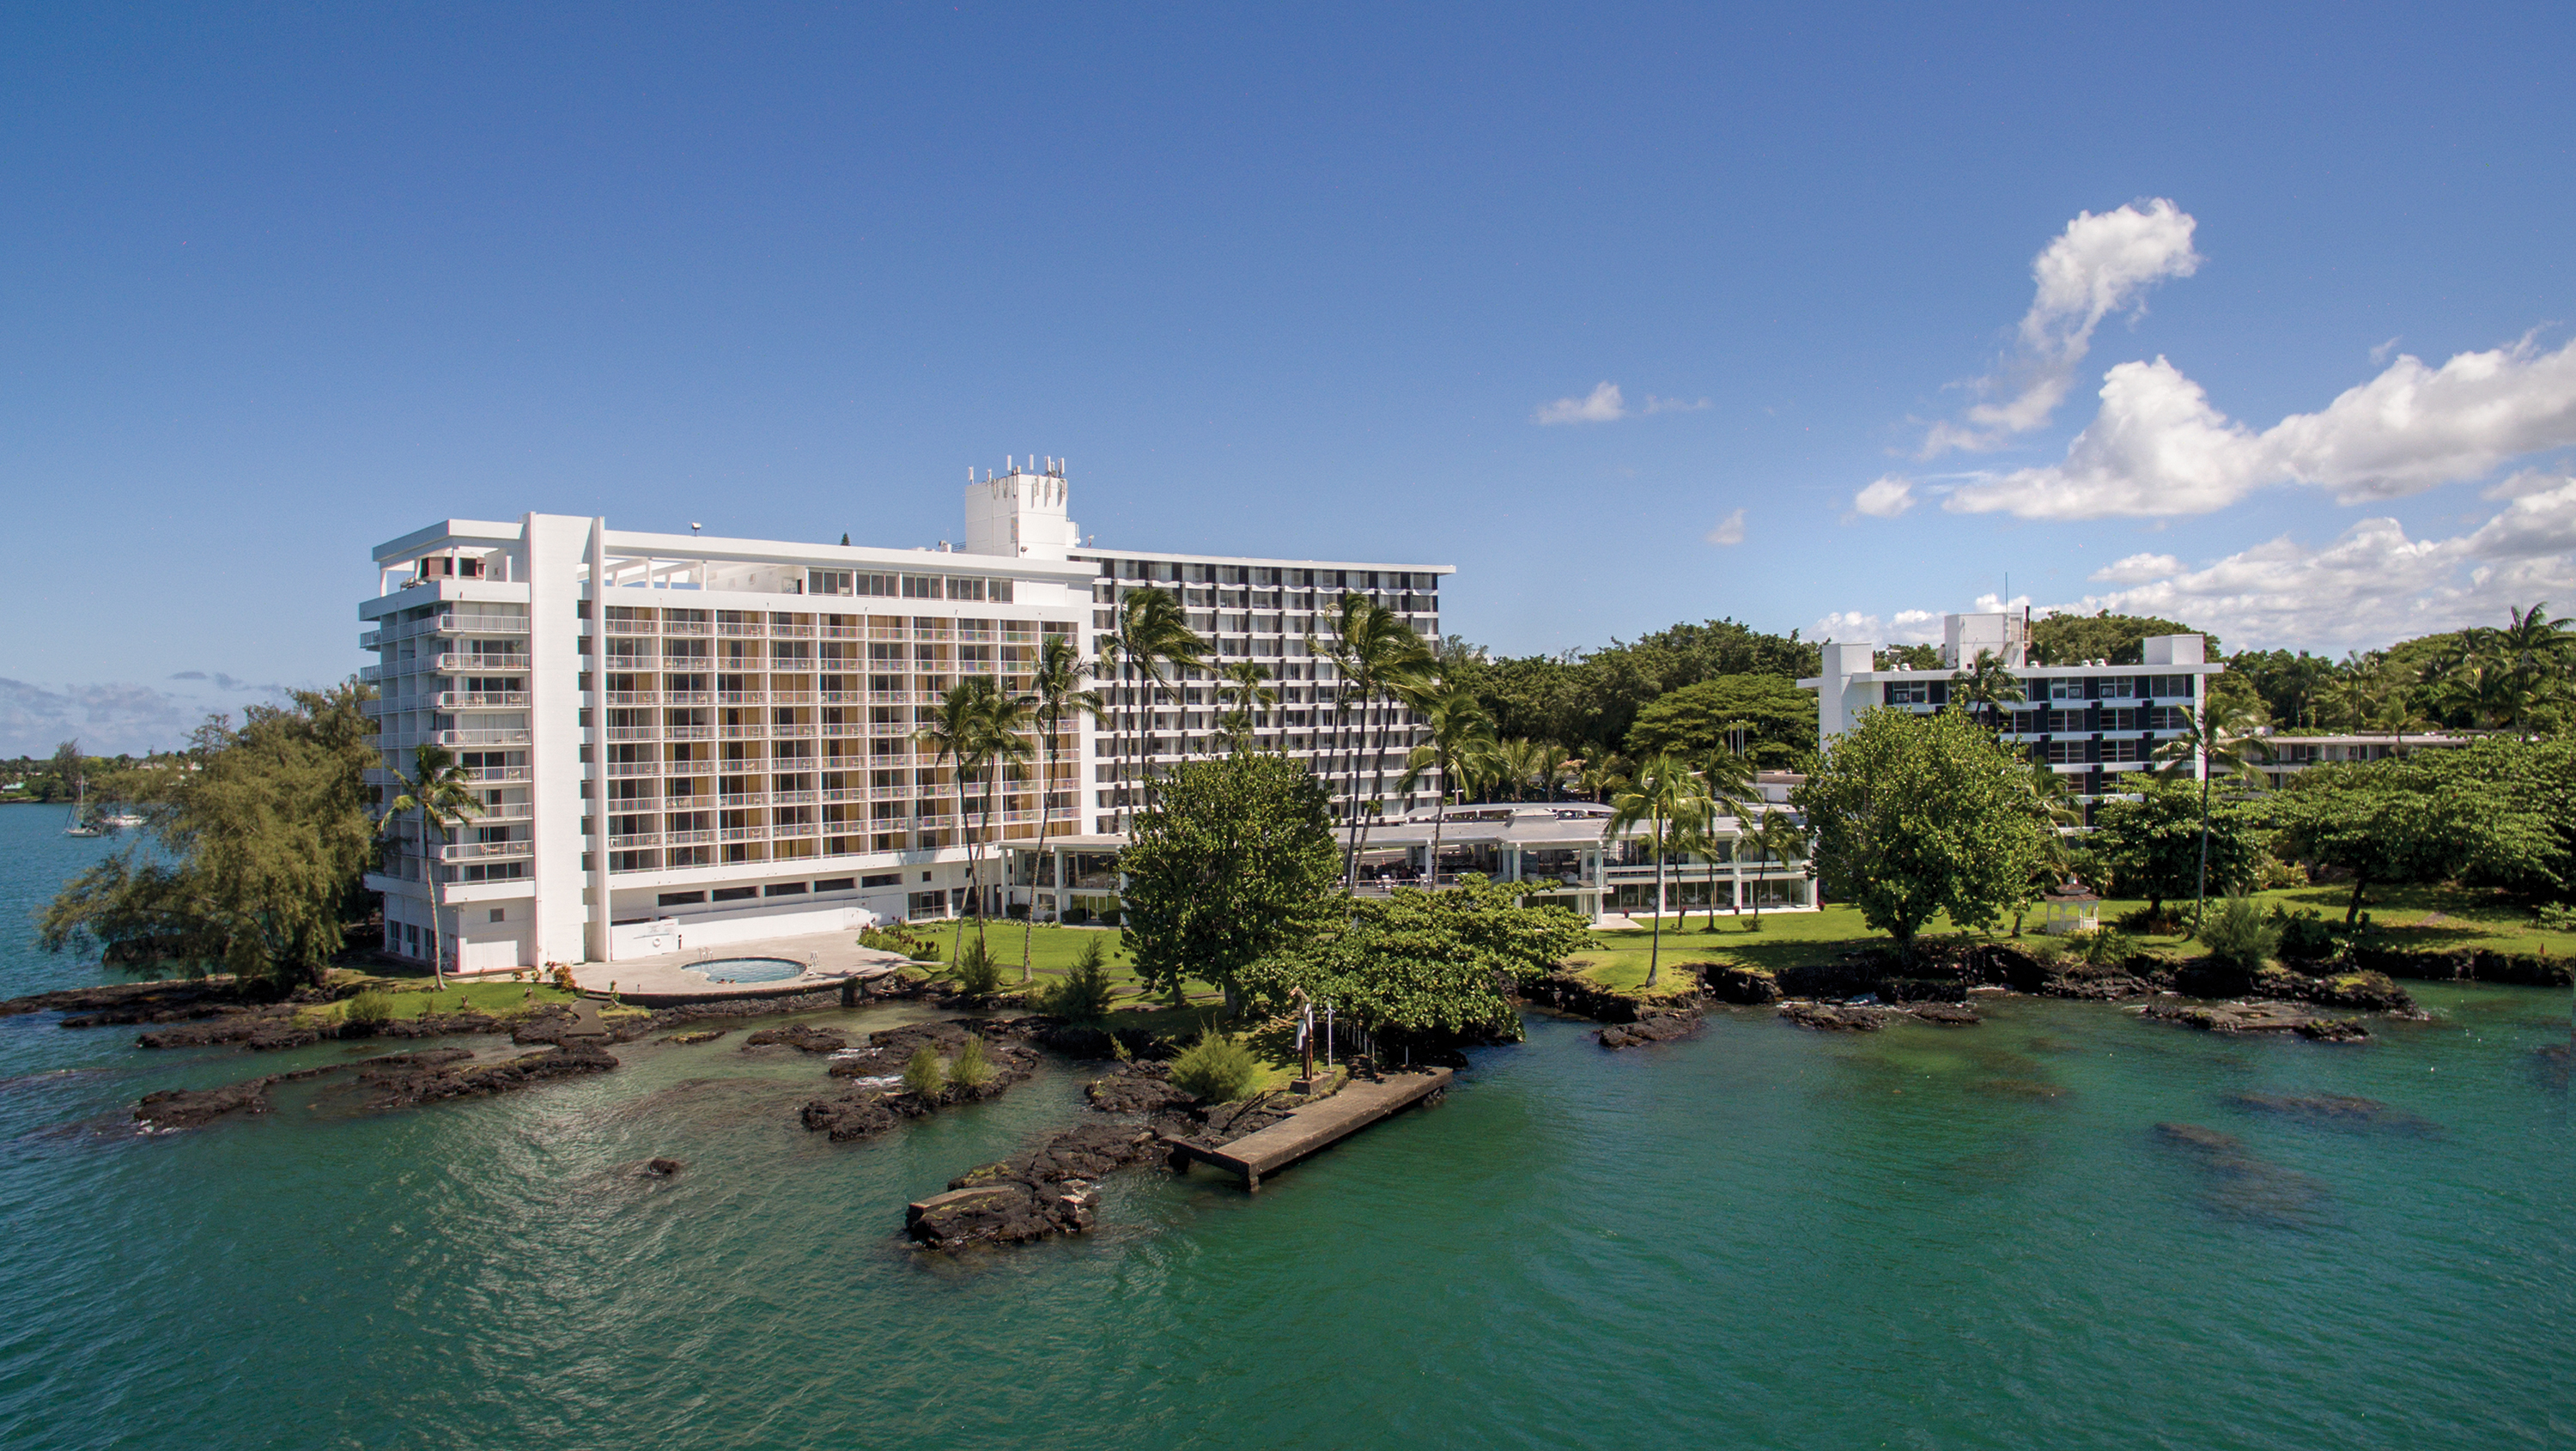 Doubletree By Hilton Opens Historic Oceanfront Hotel On Hilo Bay In Hawaii Business Wire